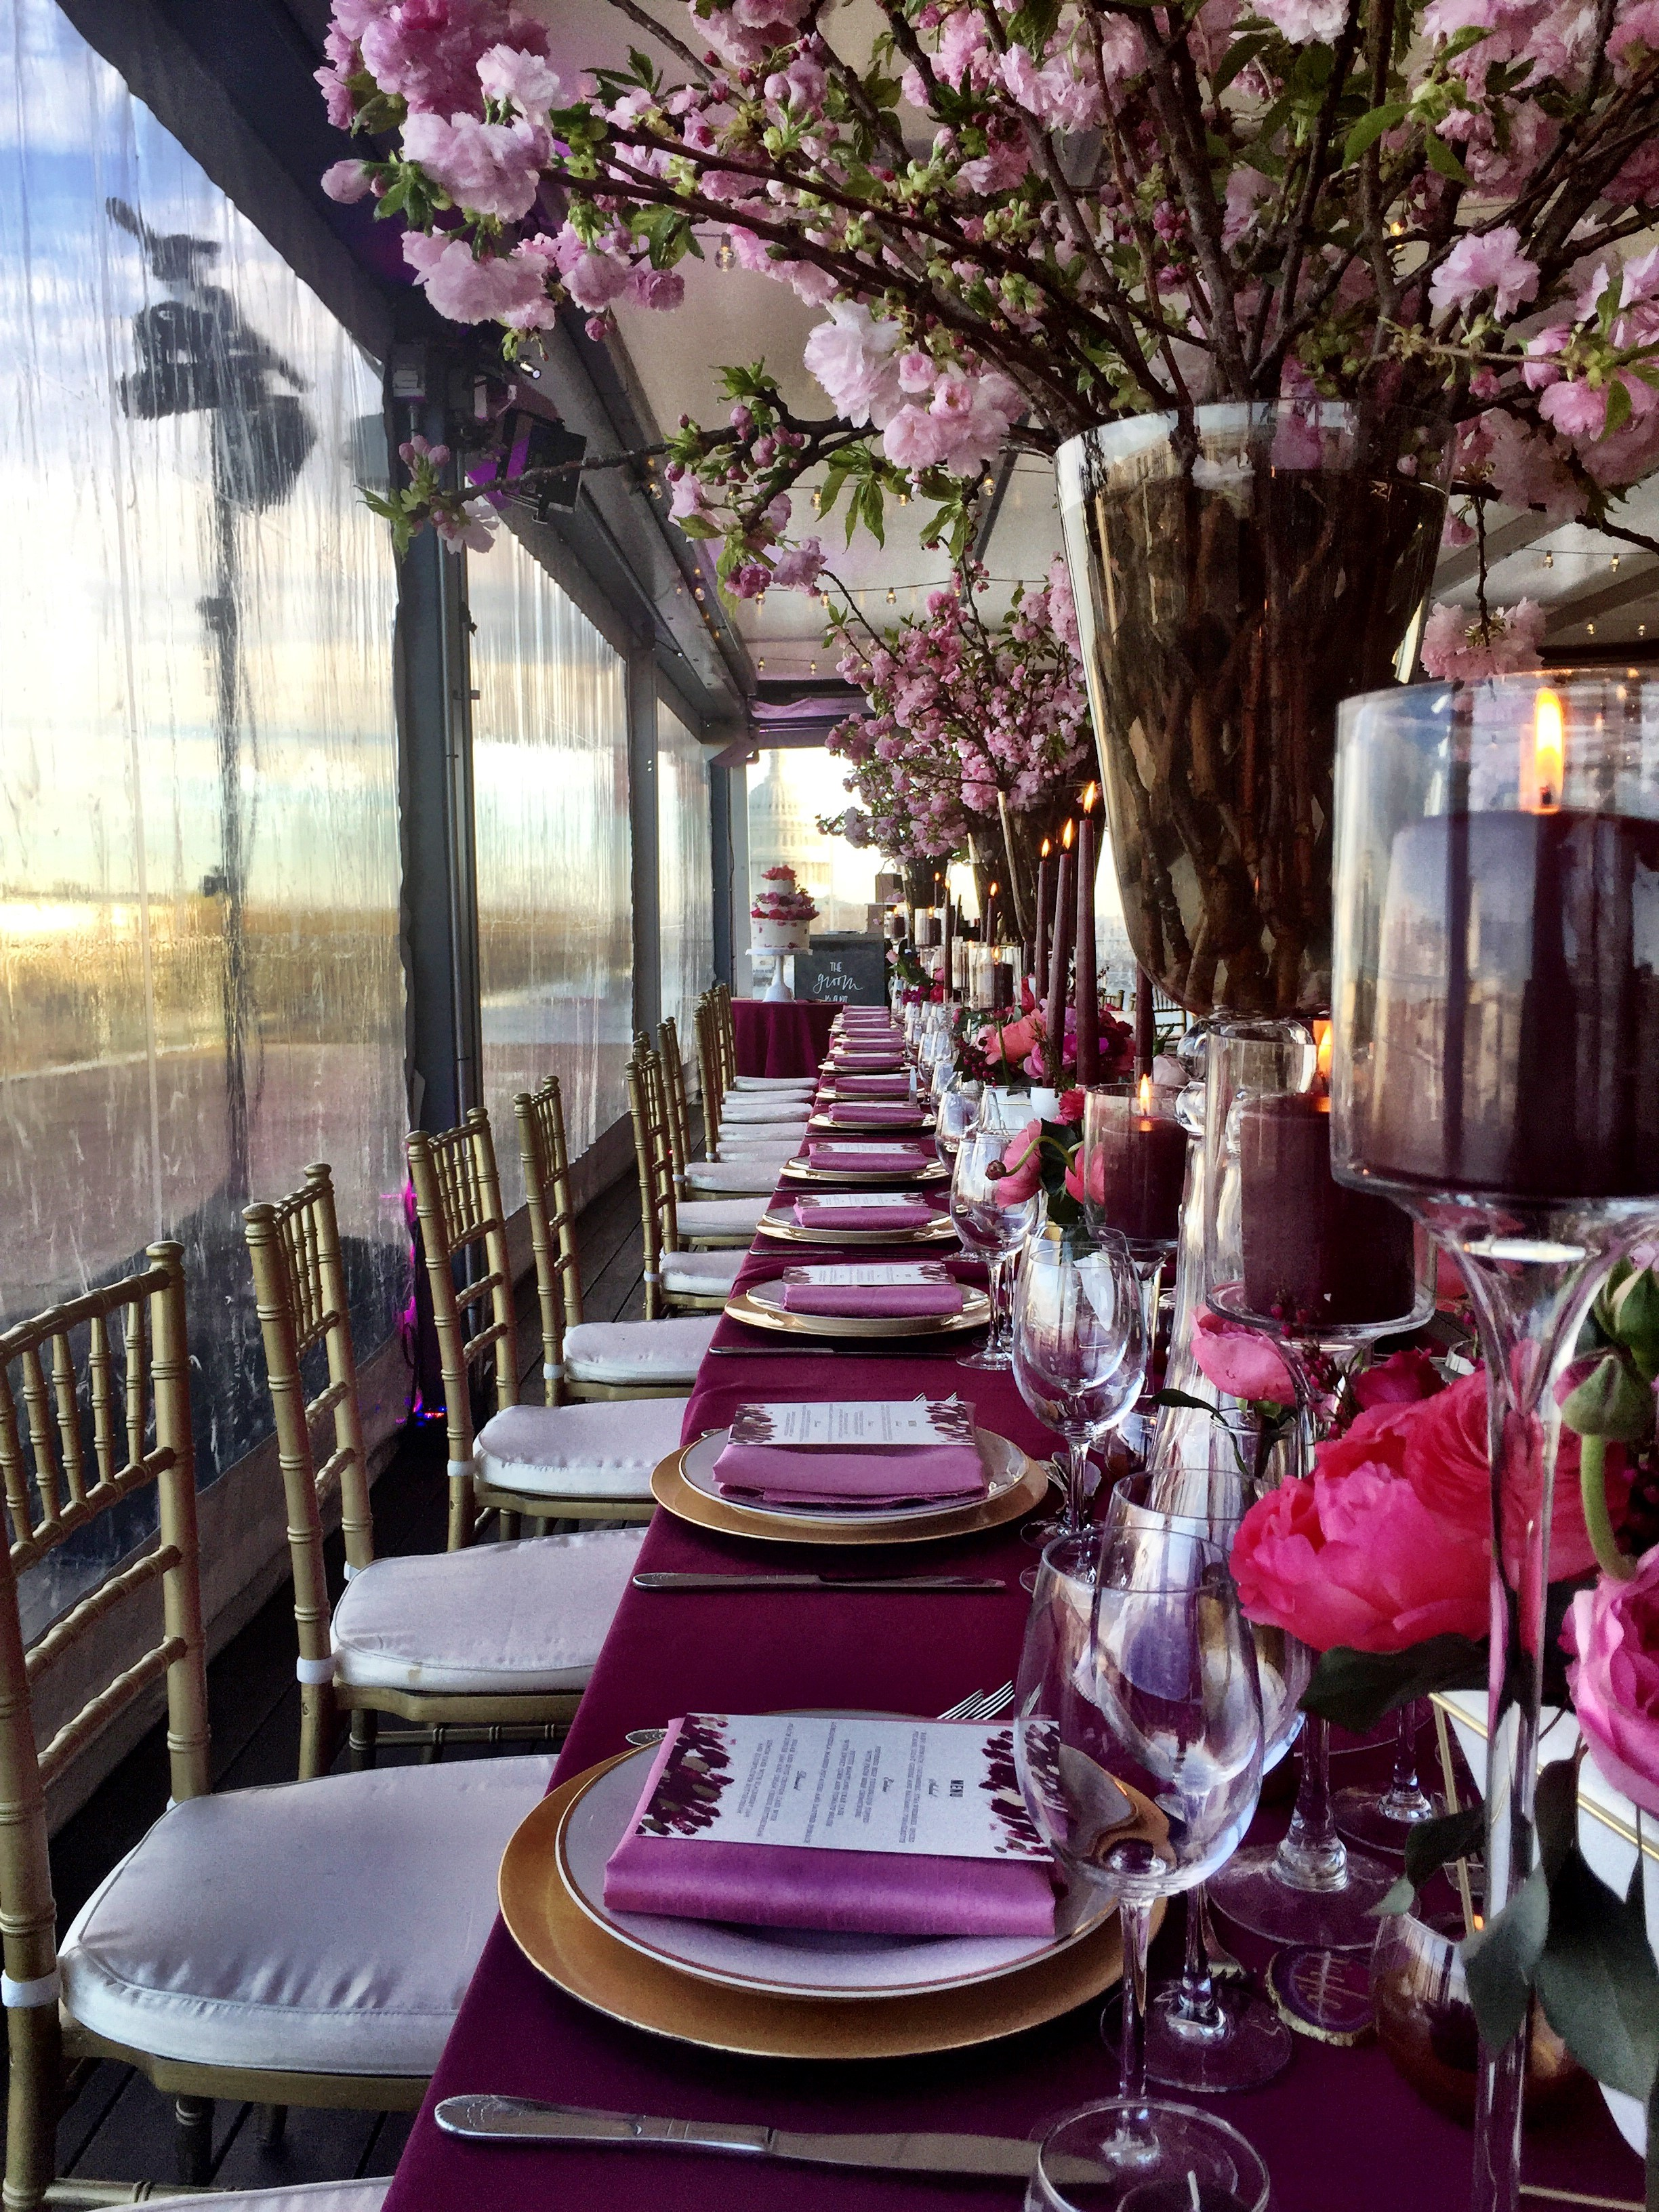 avalon-catering-cherry blossom wedding table.jpg